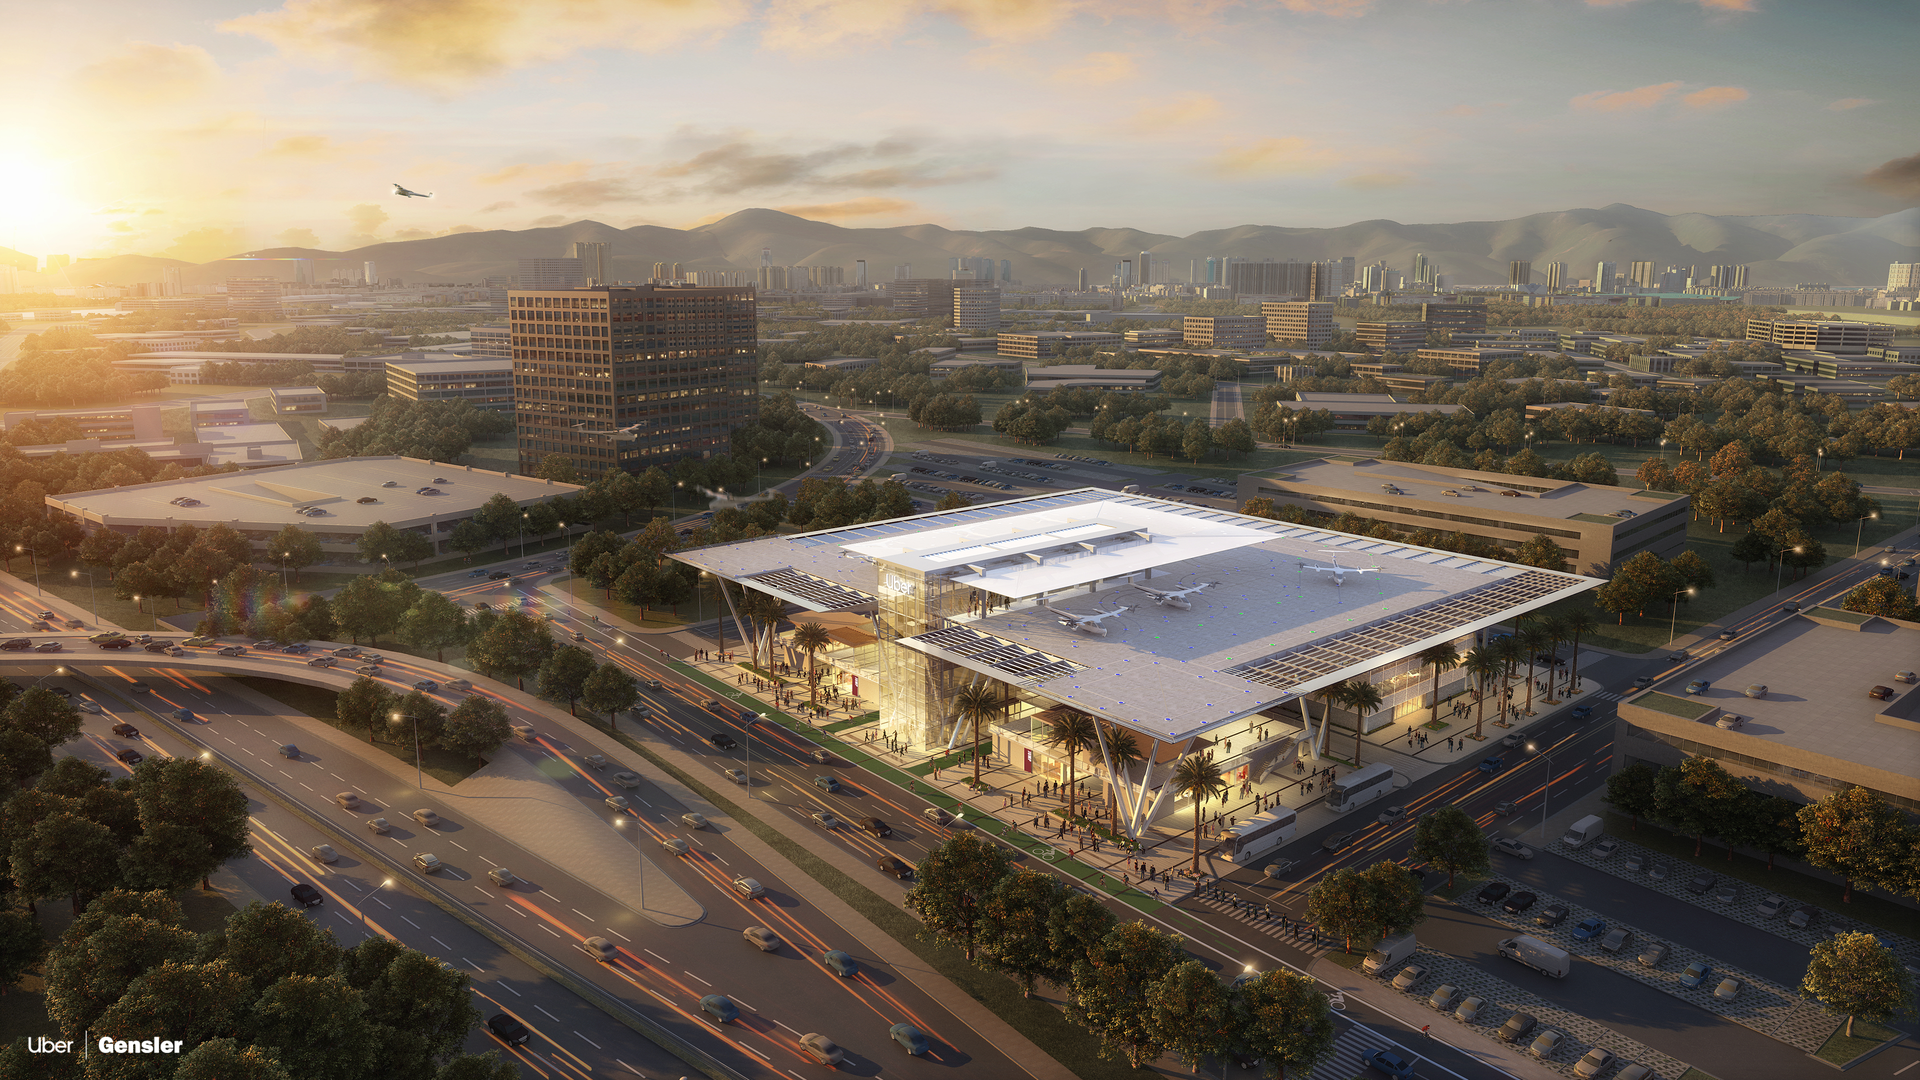 Rendering of an urban skyport for aerial taxis in Los Angeles